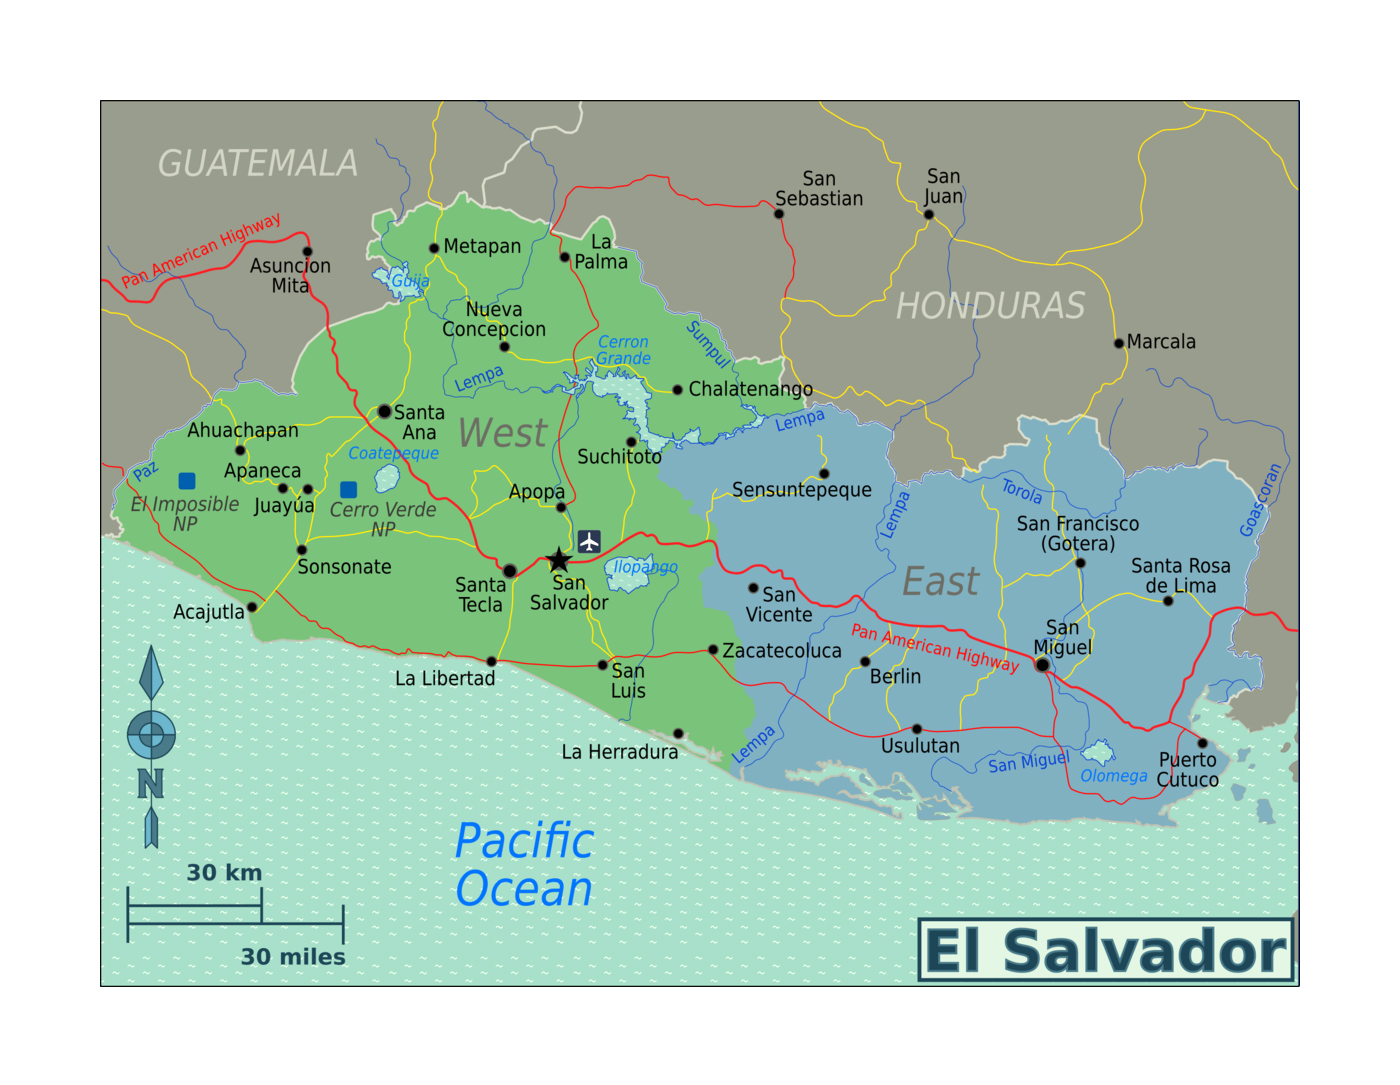 Detailed regions map of El Salvador | El Salvador | North ... on uruguay map, nicaragua map, brazil map, buenos aires map, passo fundo map, taiohae map, santiago map, honduras map, lima map, peruana map, mexico map, caracas map, central america map, south america map, sert map, costa rica map, the landing map, kusti map, world map, bage map,